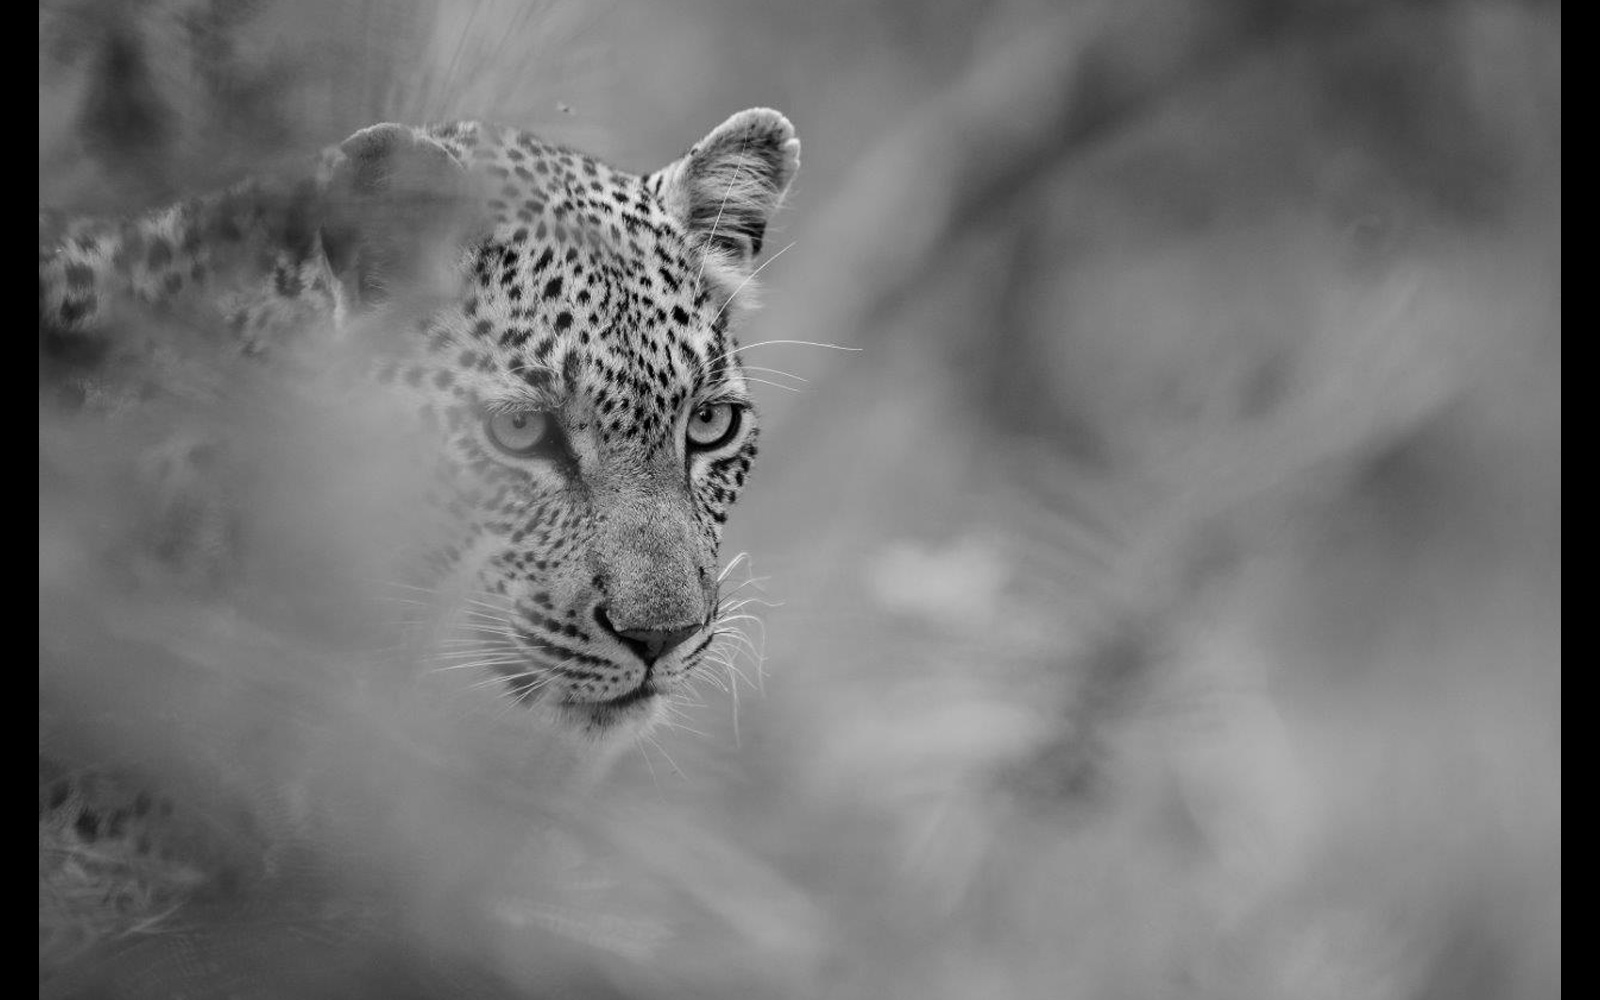 A leopard emerges from the undergrowth in Timbavati Nature Reserve, South Africa © Michael Raddall